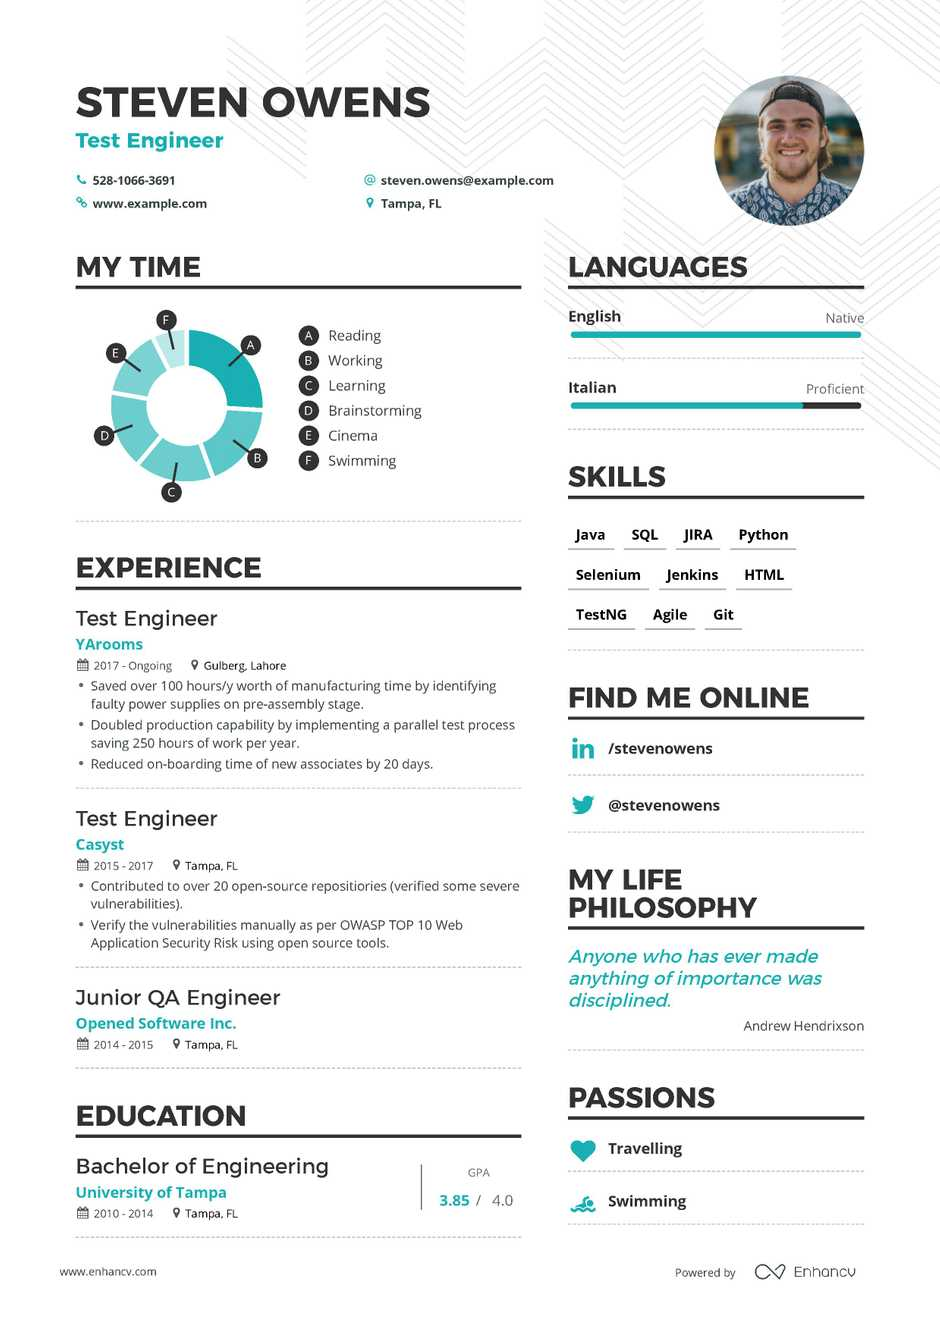 Test Engineer Resume Example and Guide for 2019